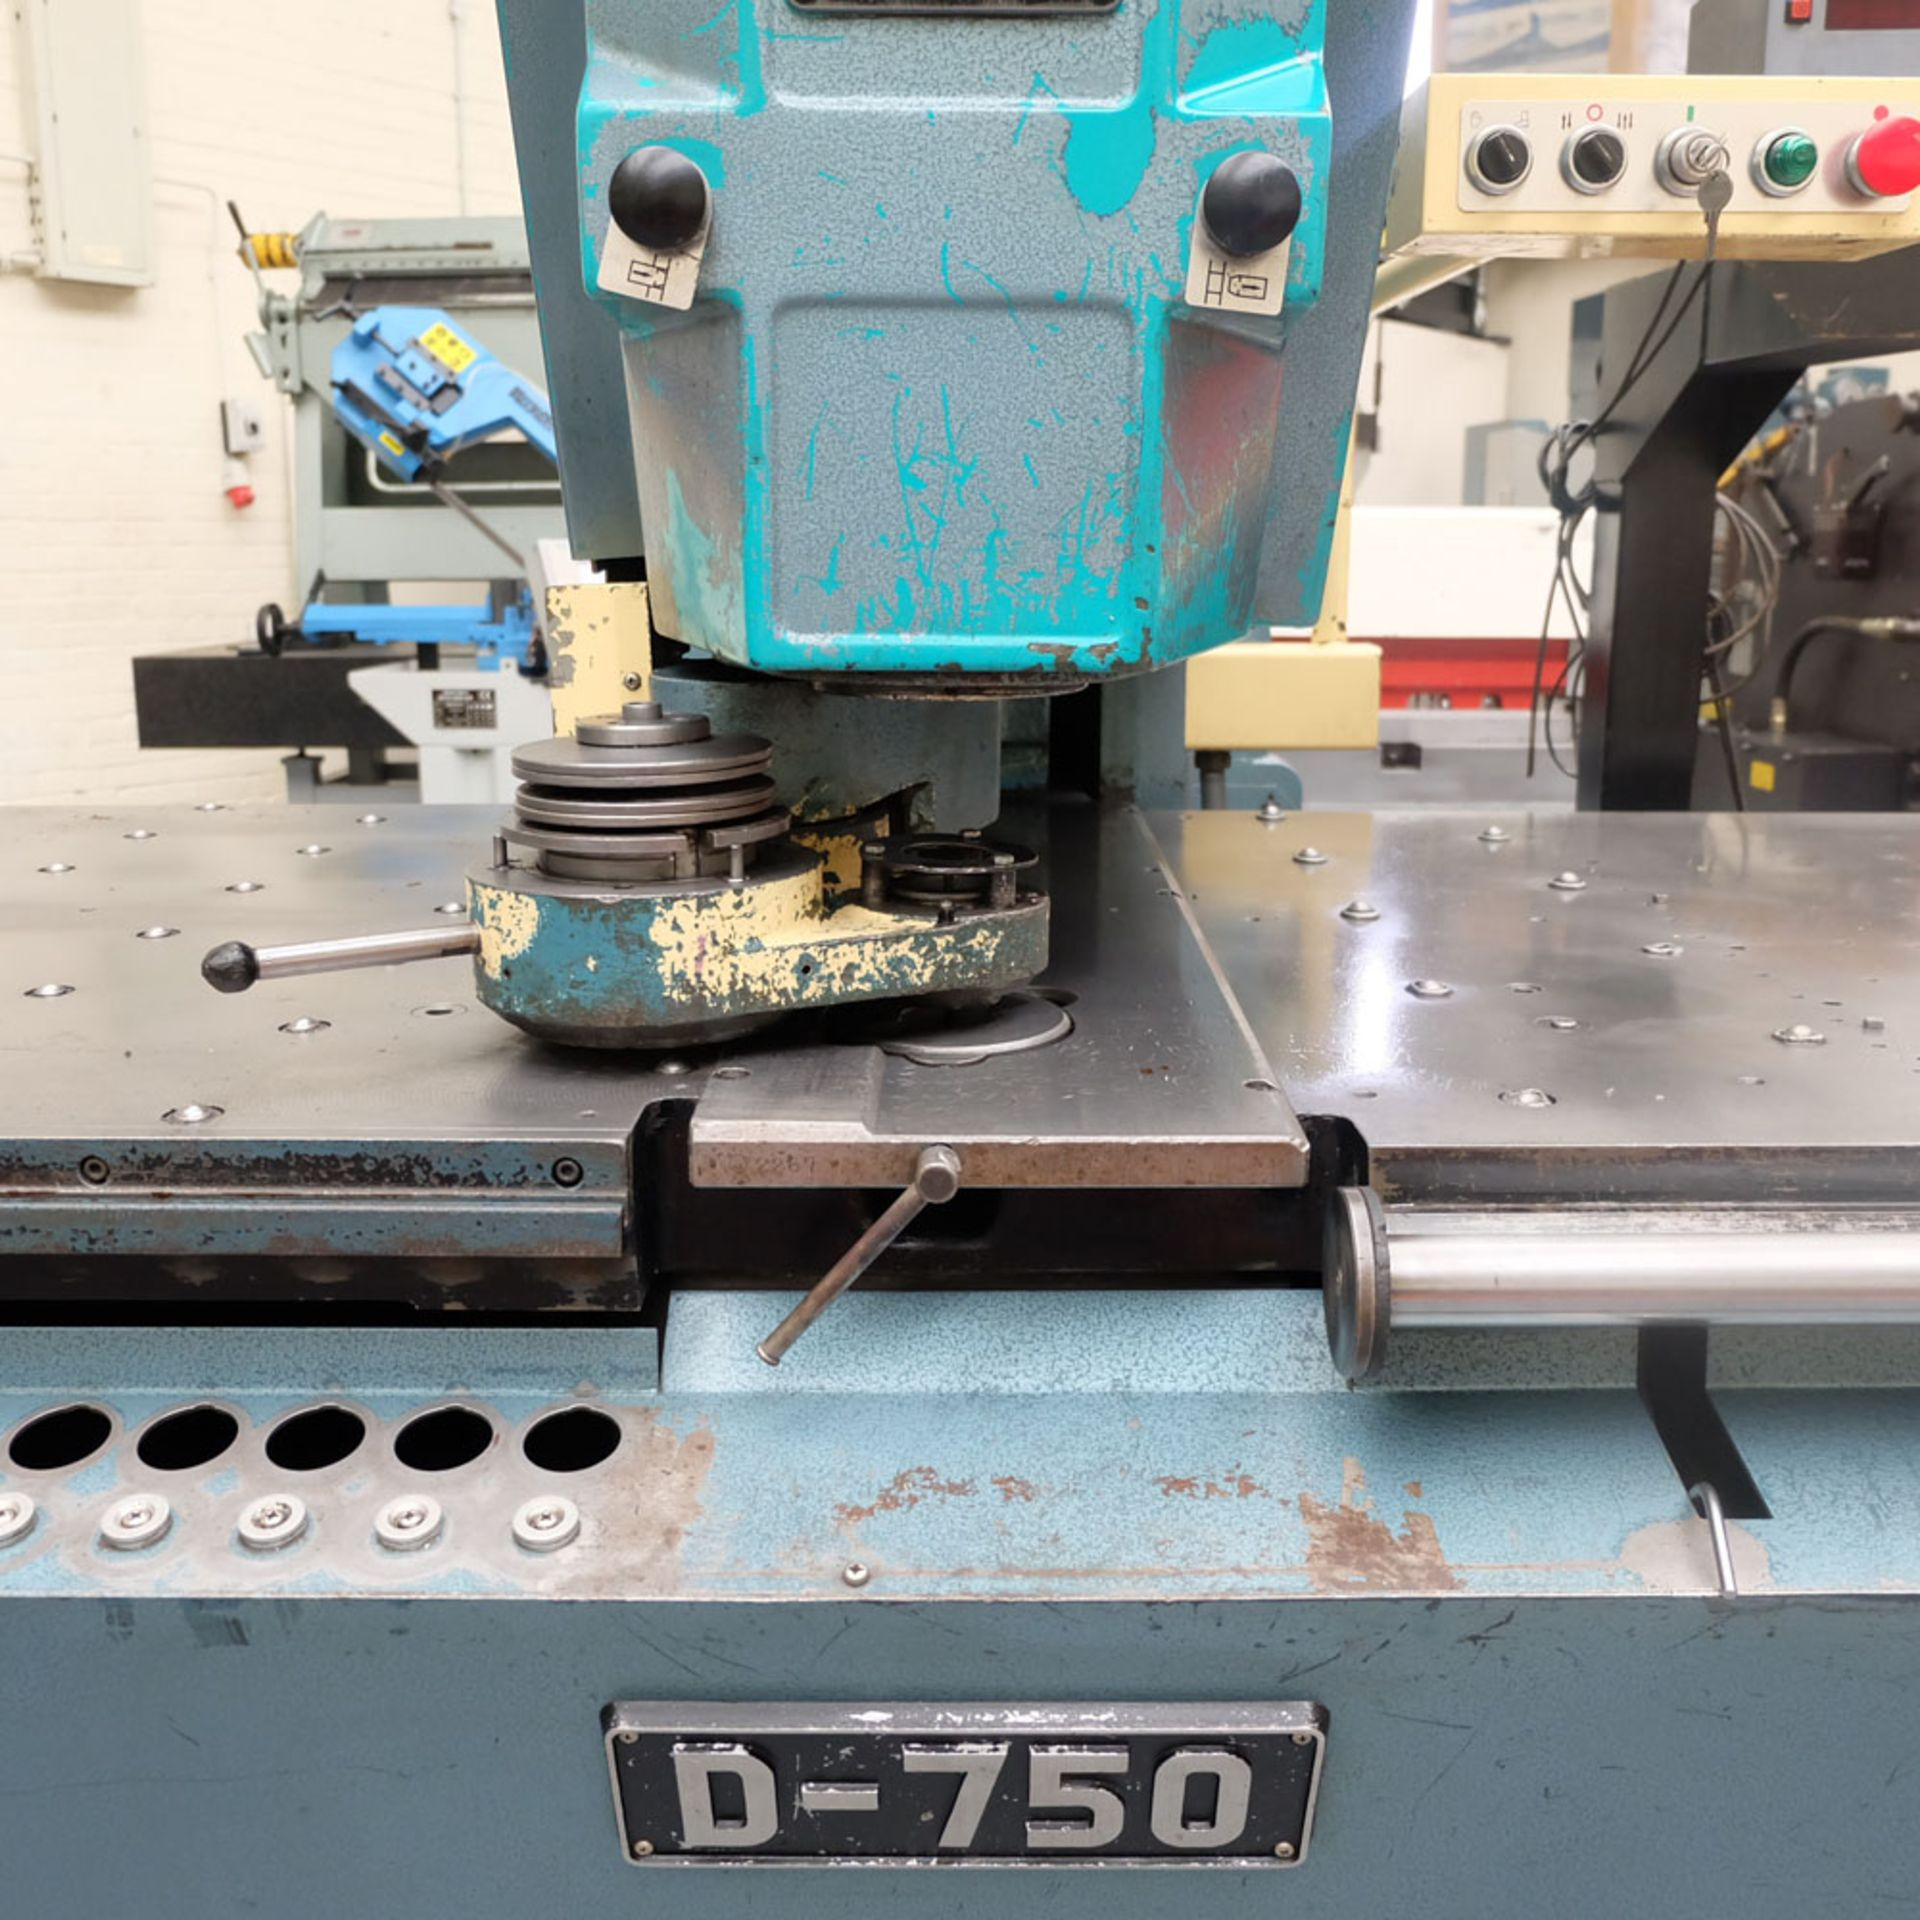 Amada D-750 Duplicator Punching Machine with Tooling and Digital Readout. - Image 2 of 8